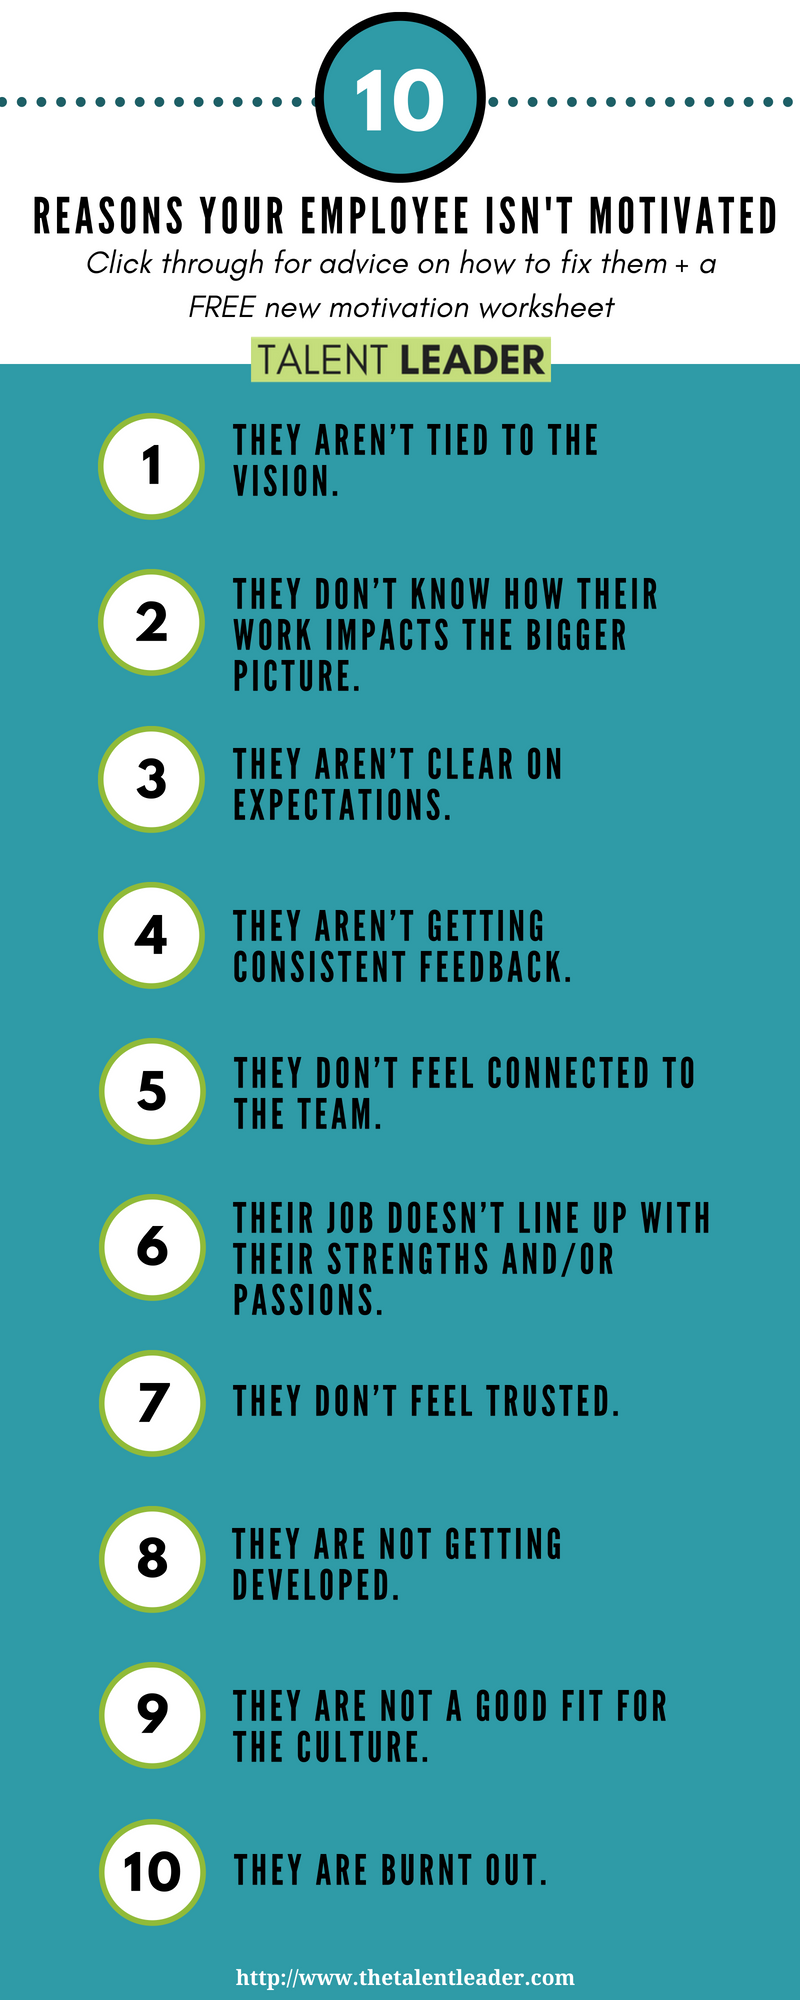 10 reasons why your employee isn't motivated | nanny & teacher ideas